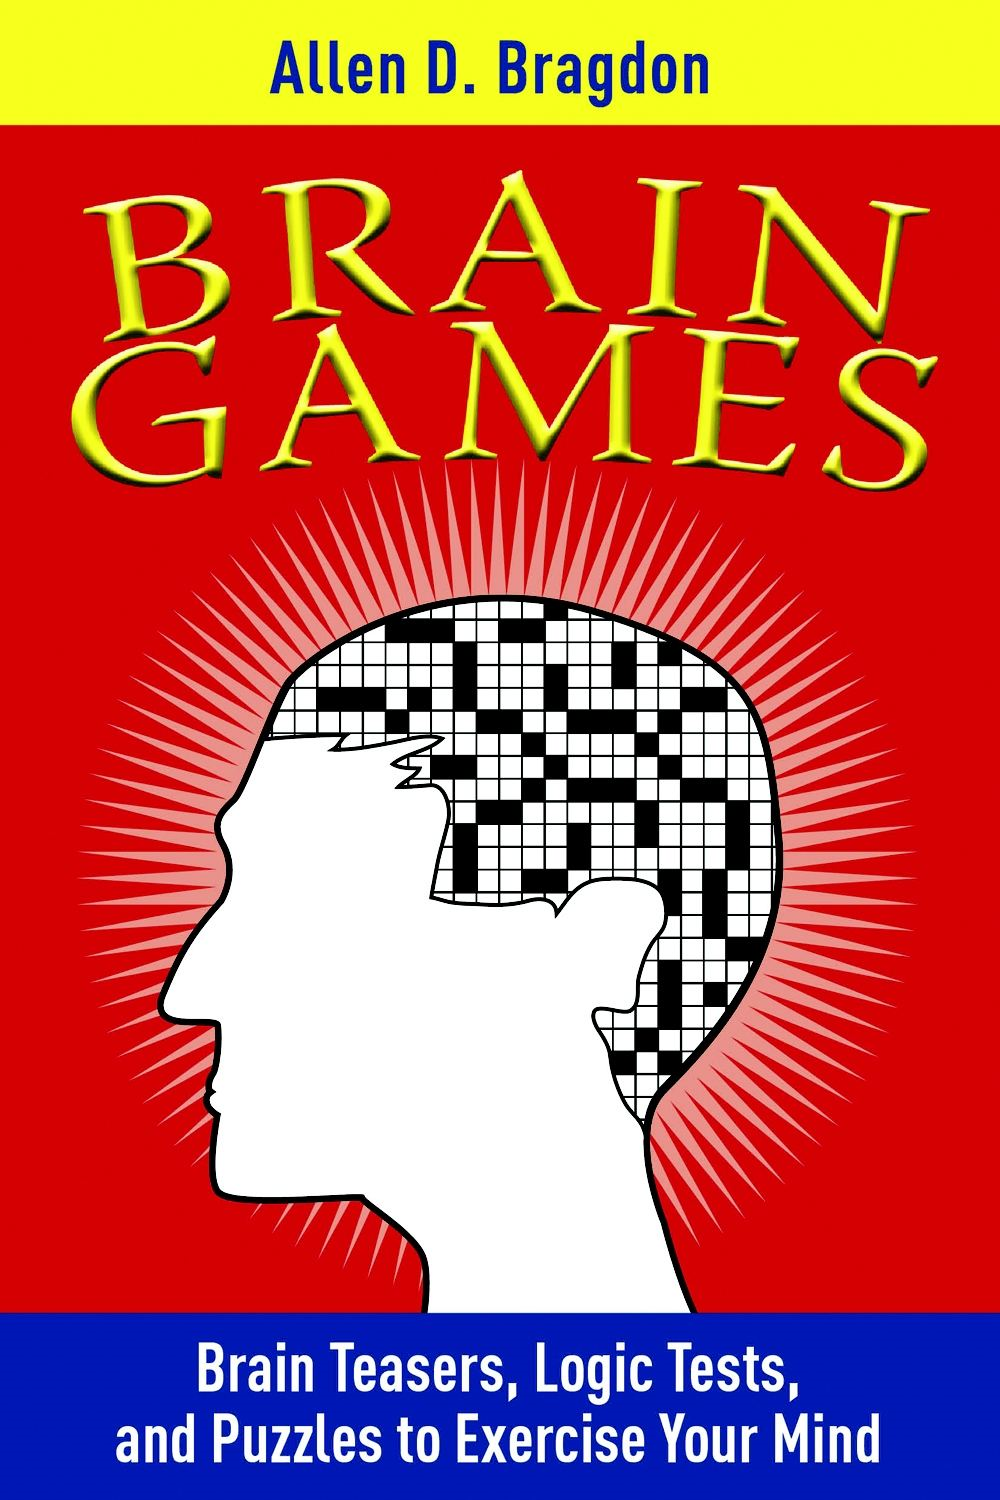 Brain Games: Brain Teasers, Logic Tests, and Puzzles to Exercise Your Mind By: Allen D. Bragdon